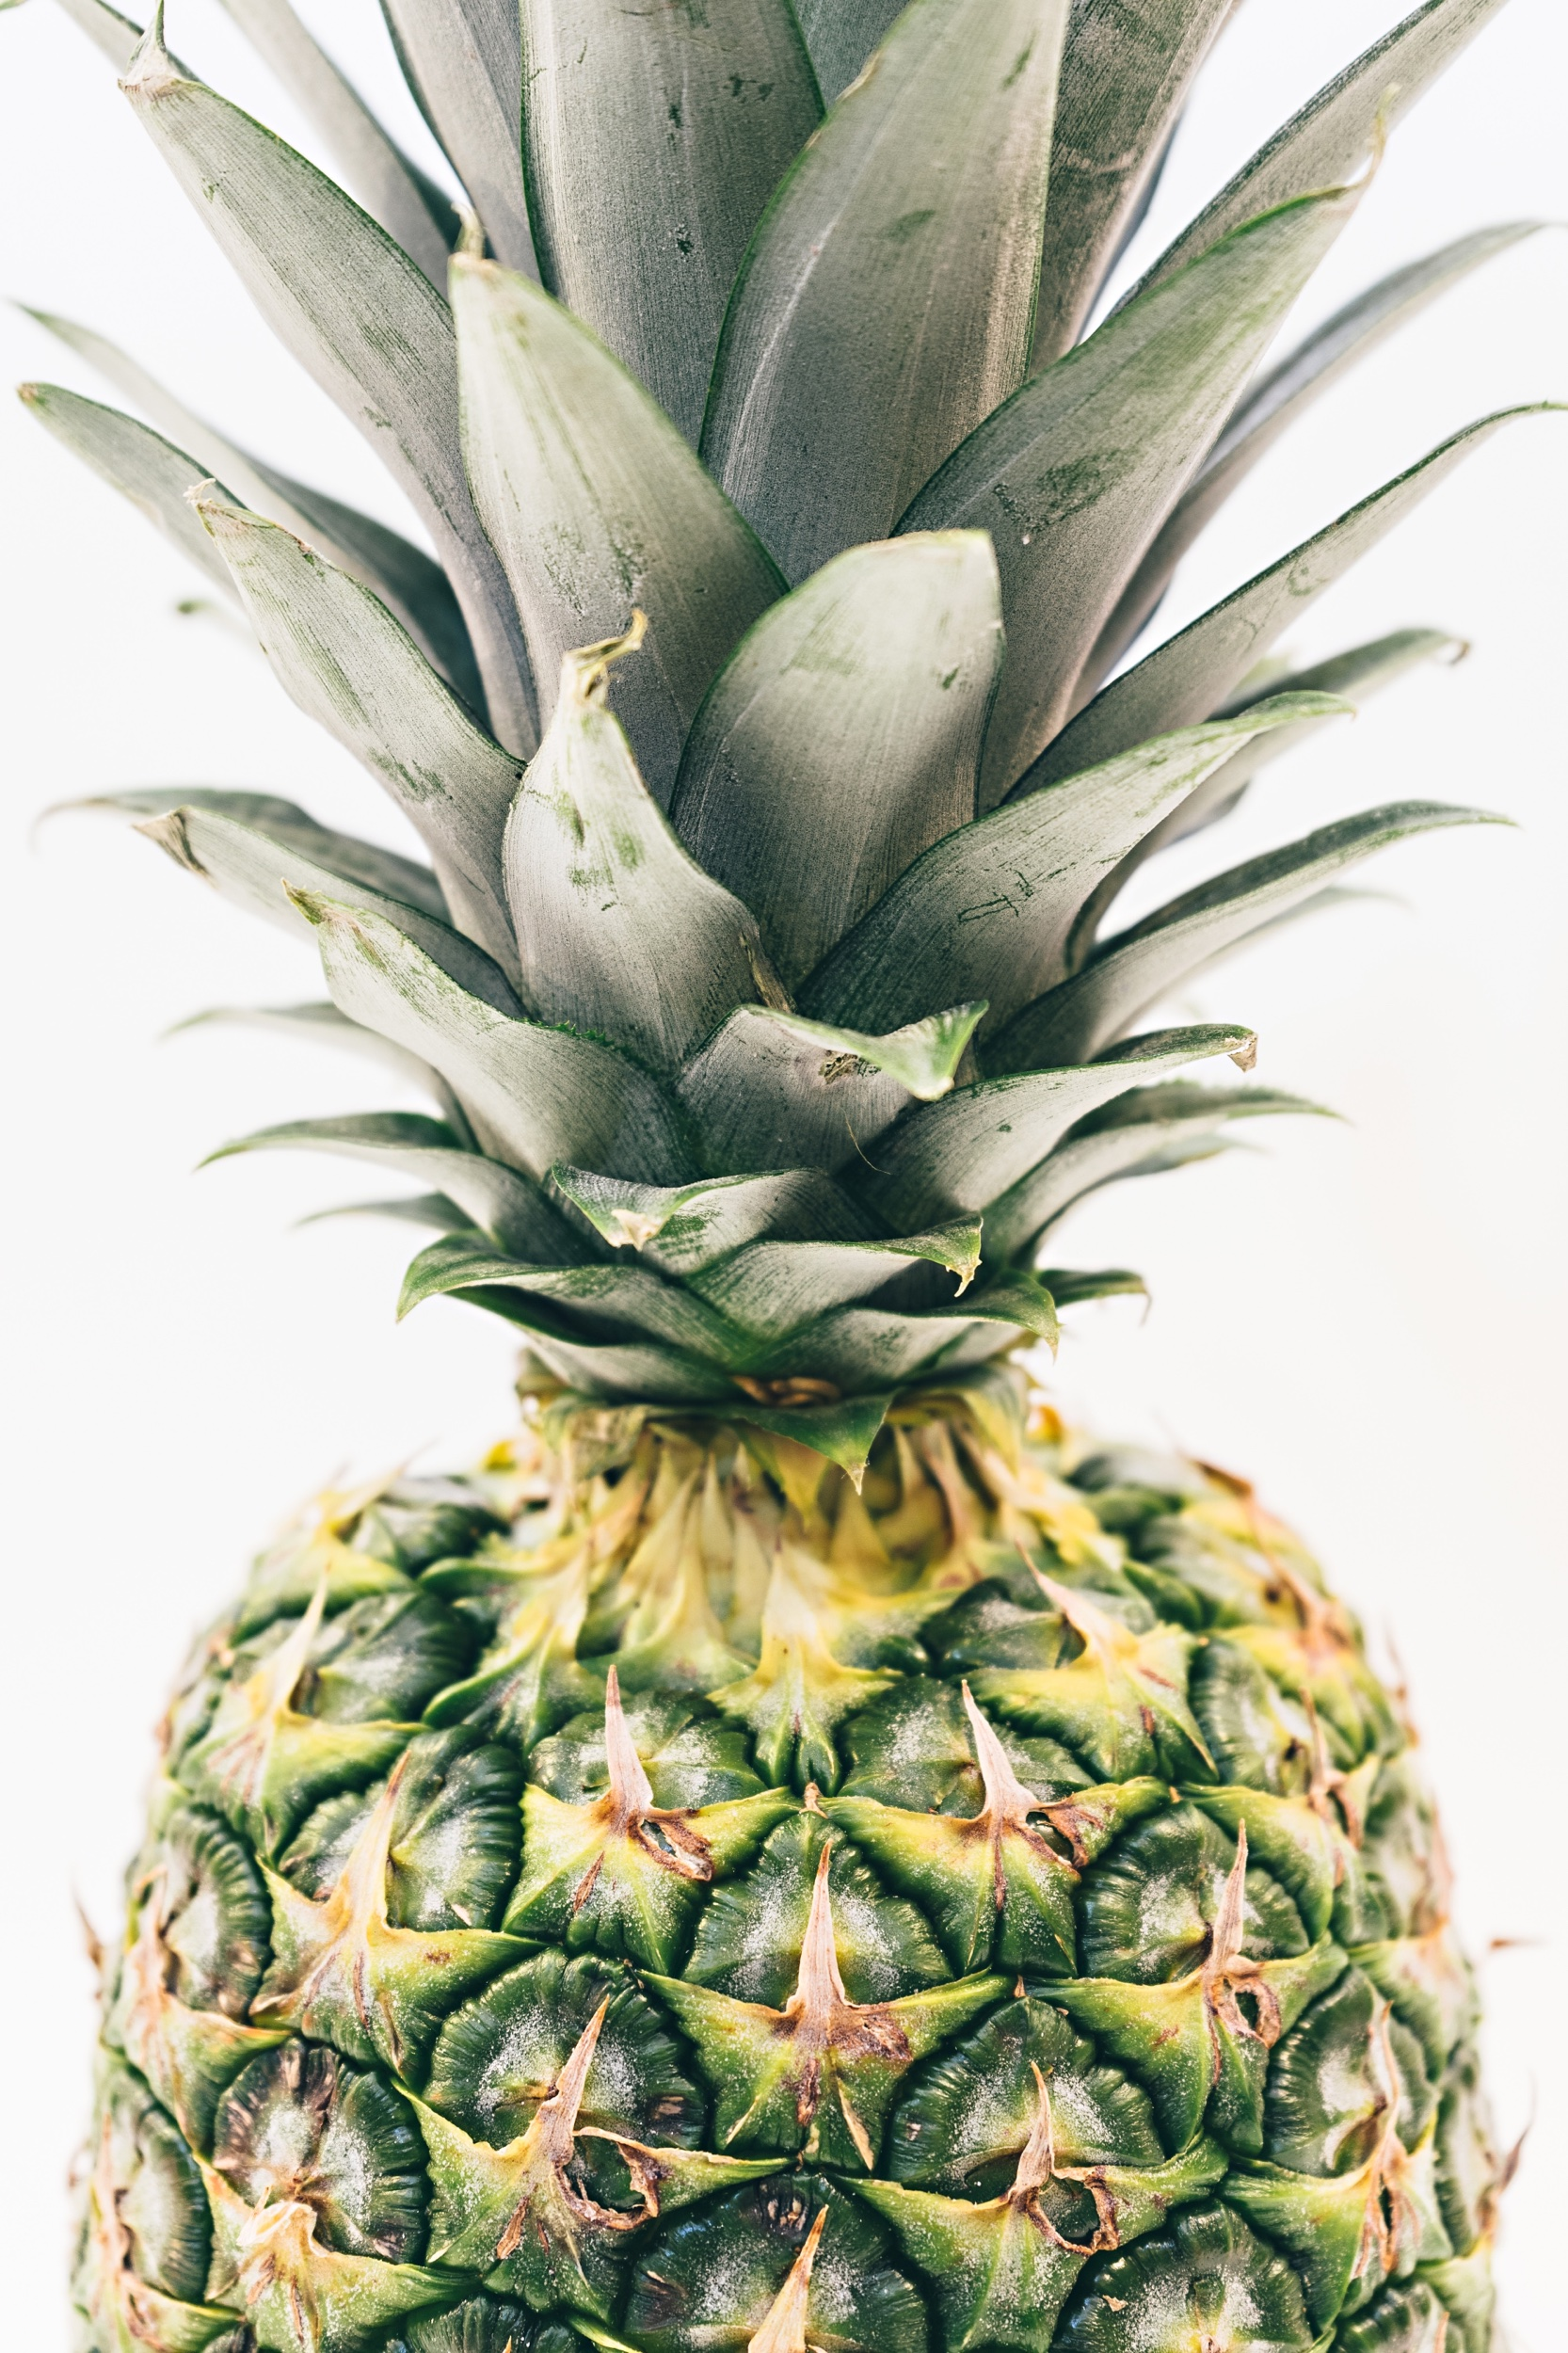 pineapple-supply-co-258368-unsplash.jpeg